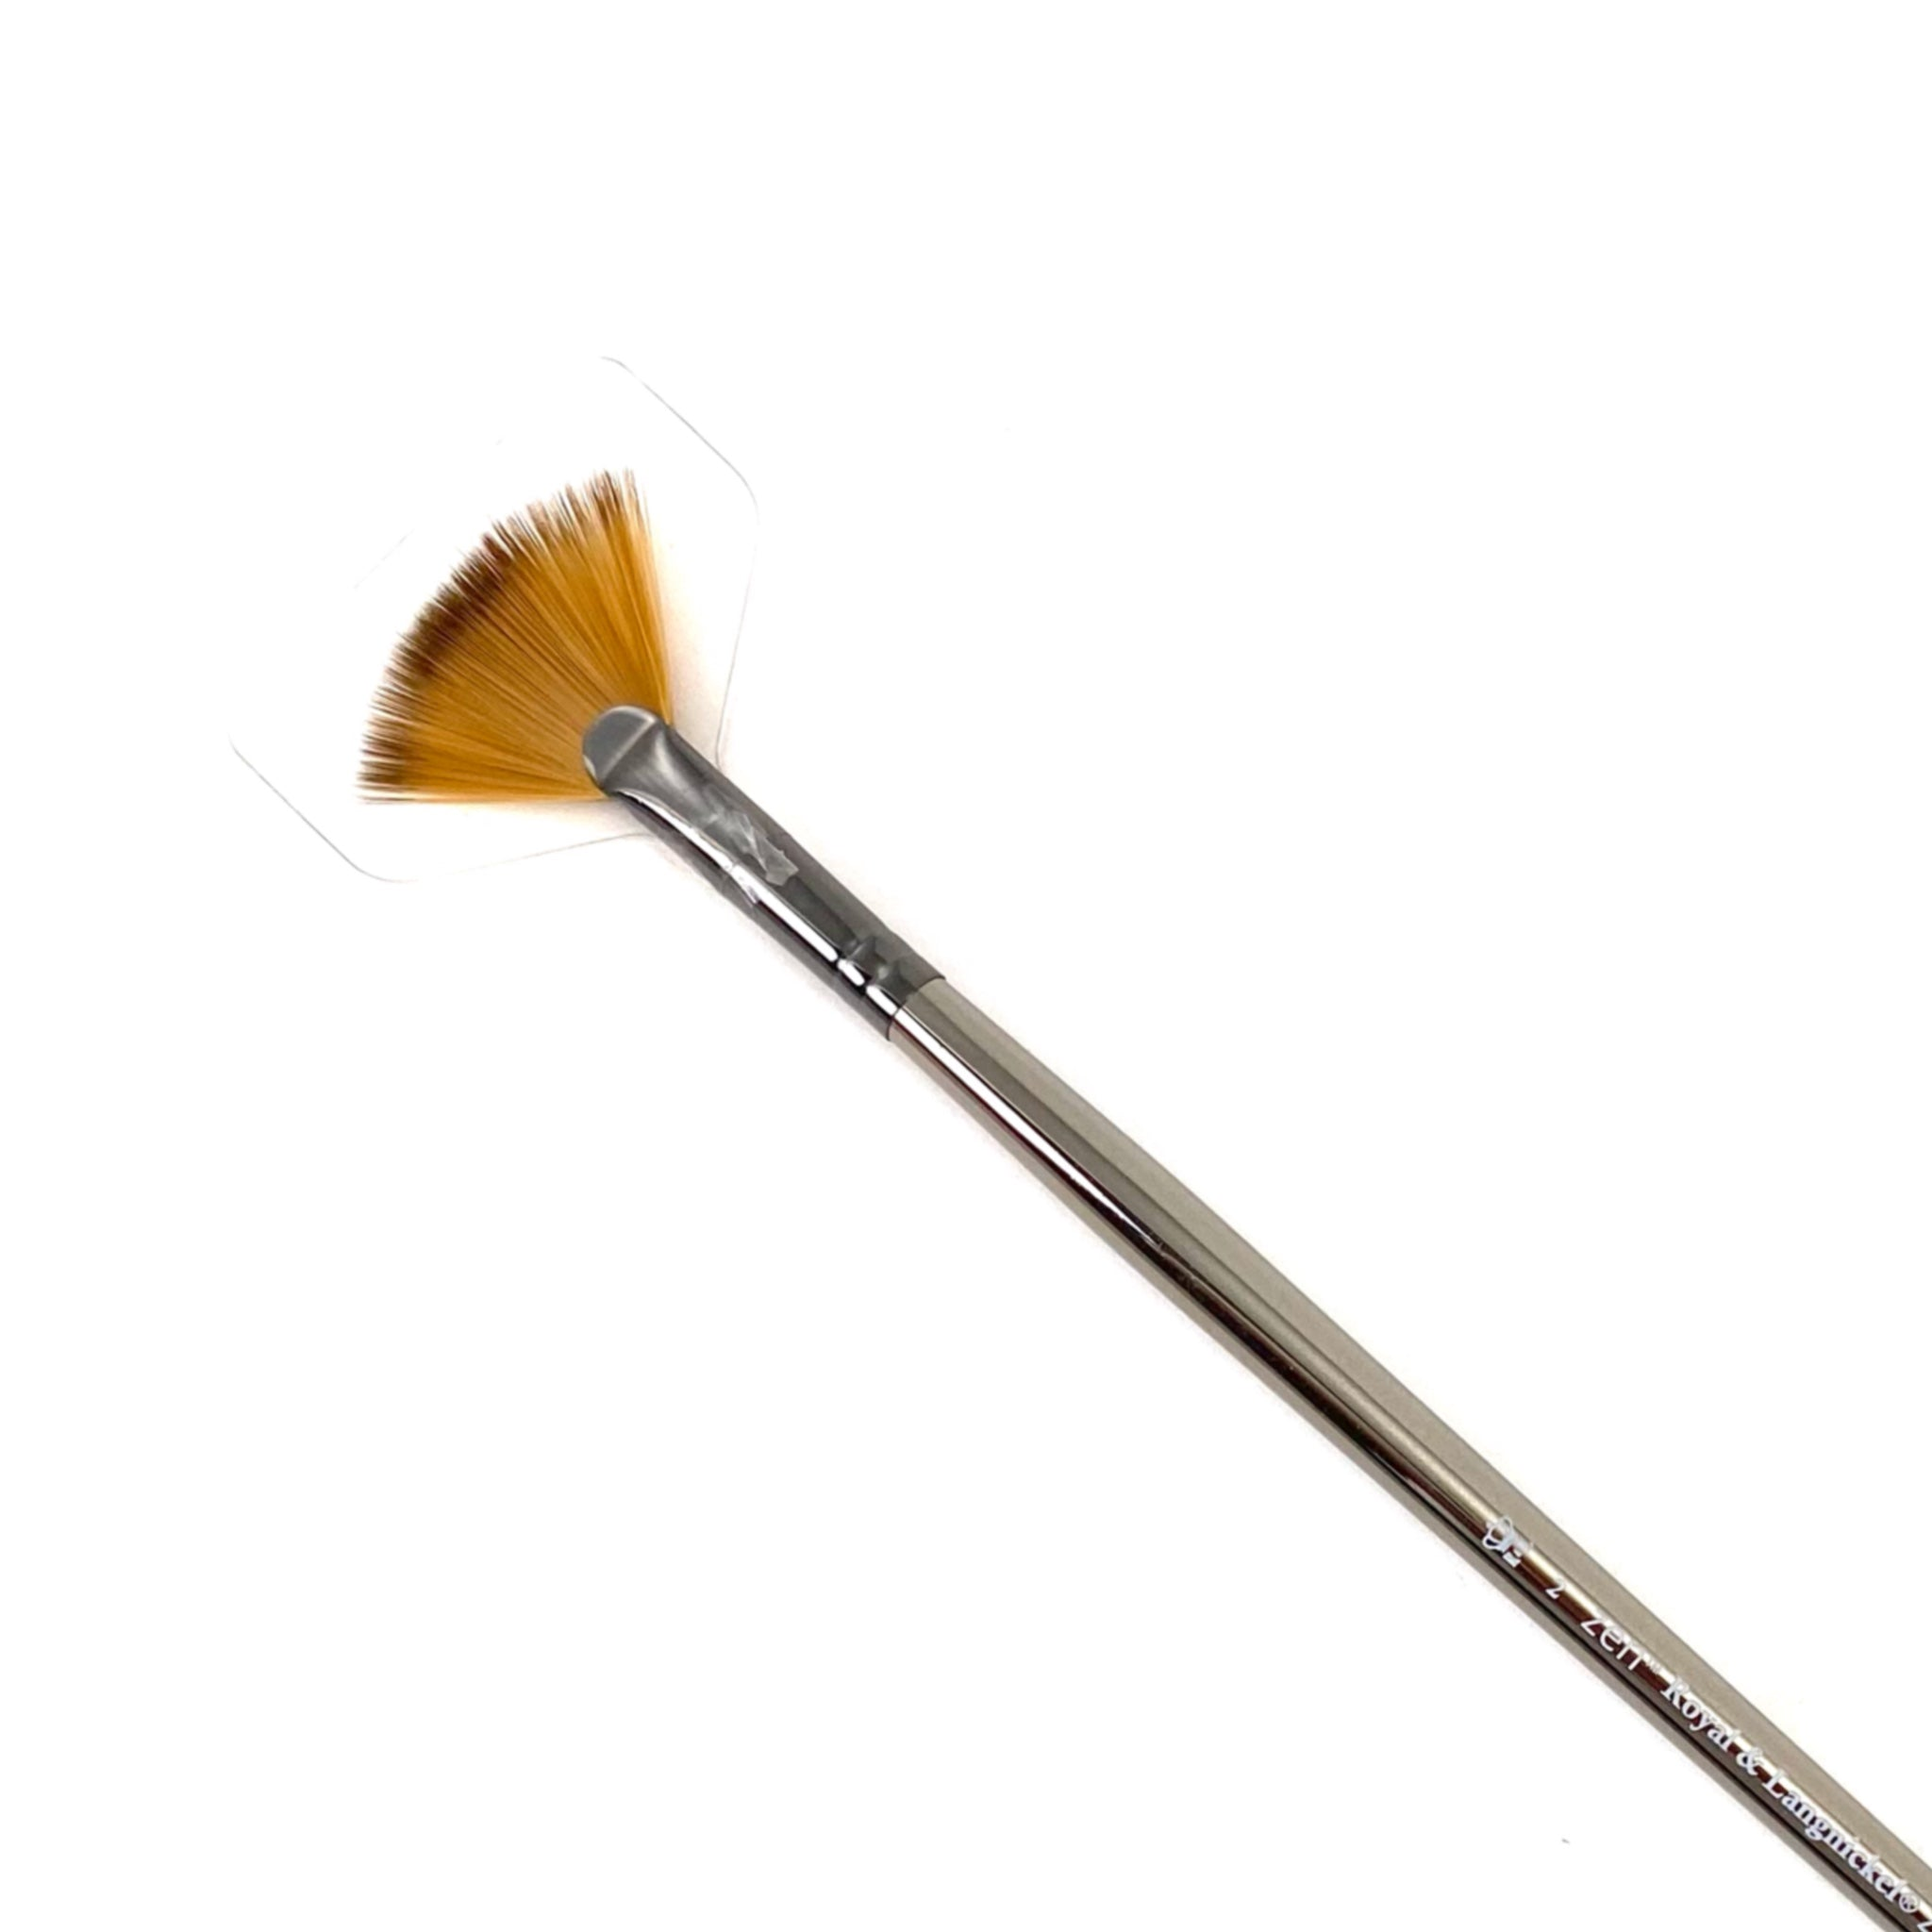 Royal & Langnickle Zen Long Handle Brushes - 43 Series - Fan / 2 by Royal & Langnickle - K. A. Artist Shop